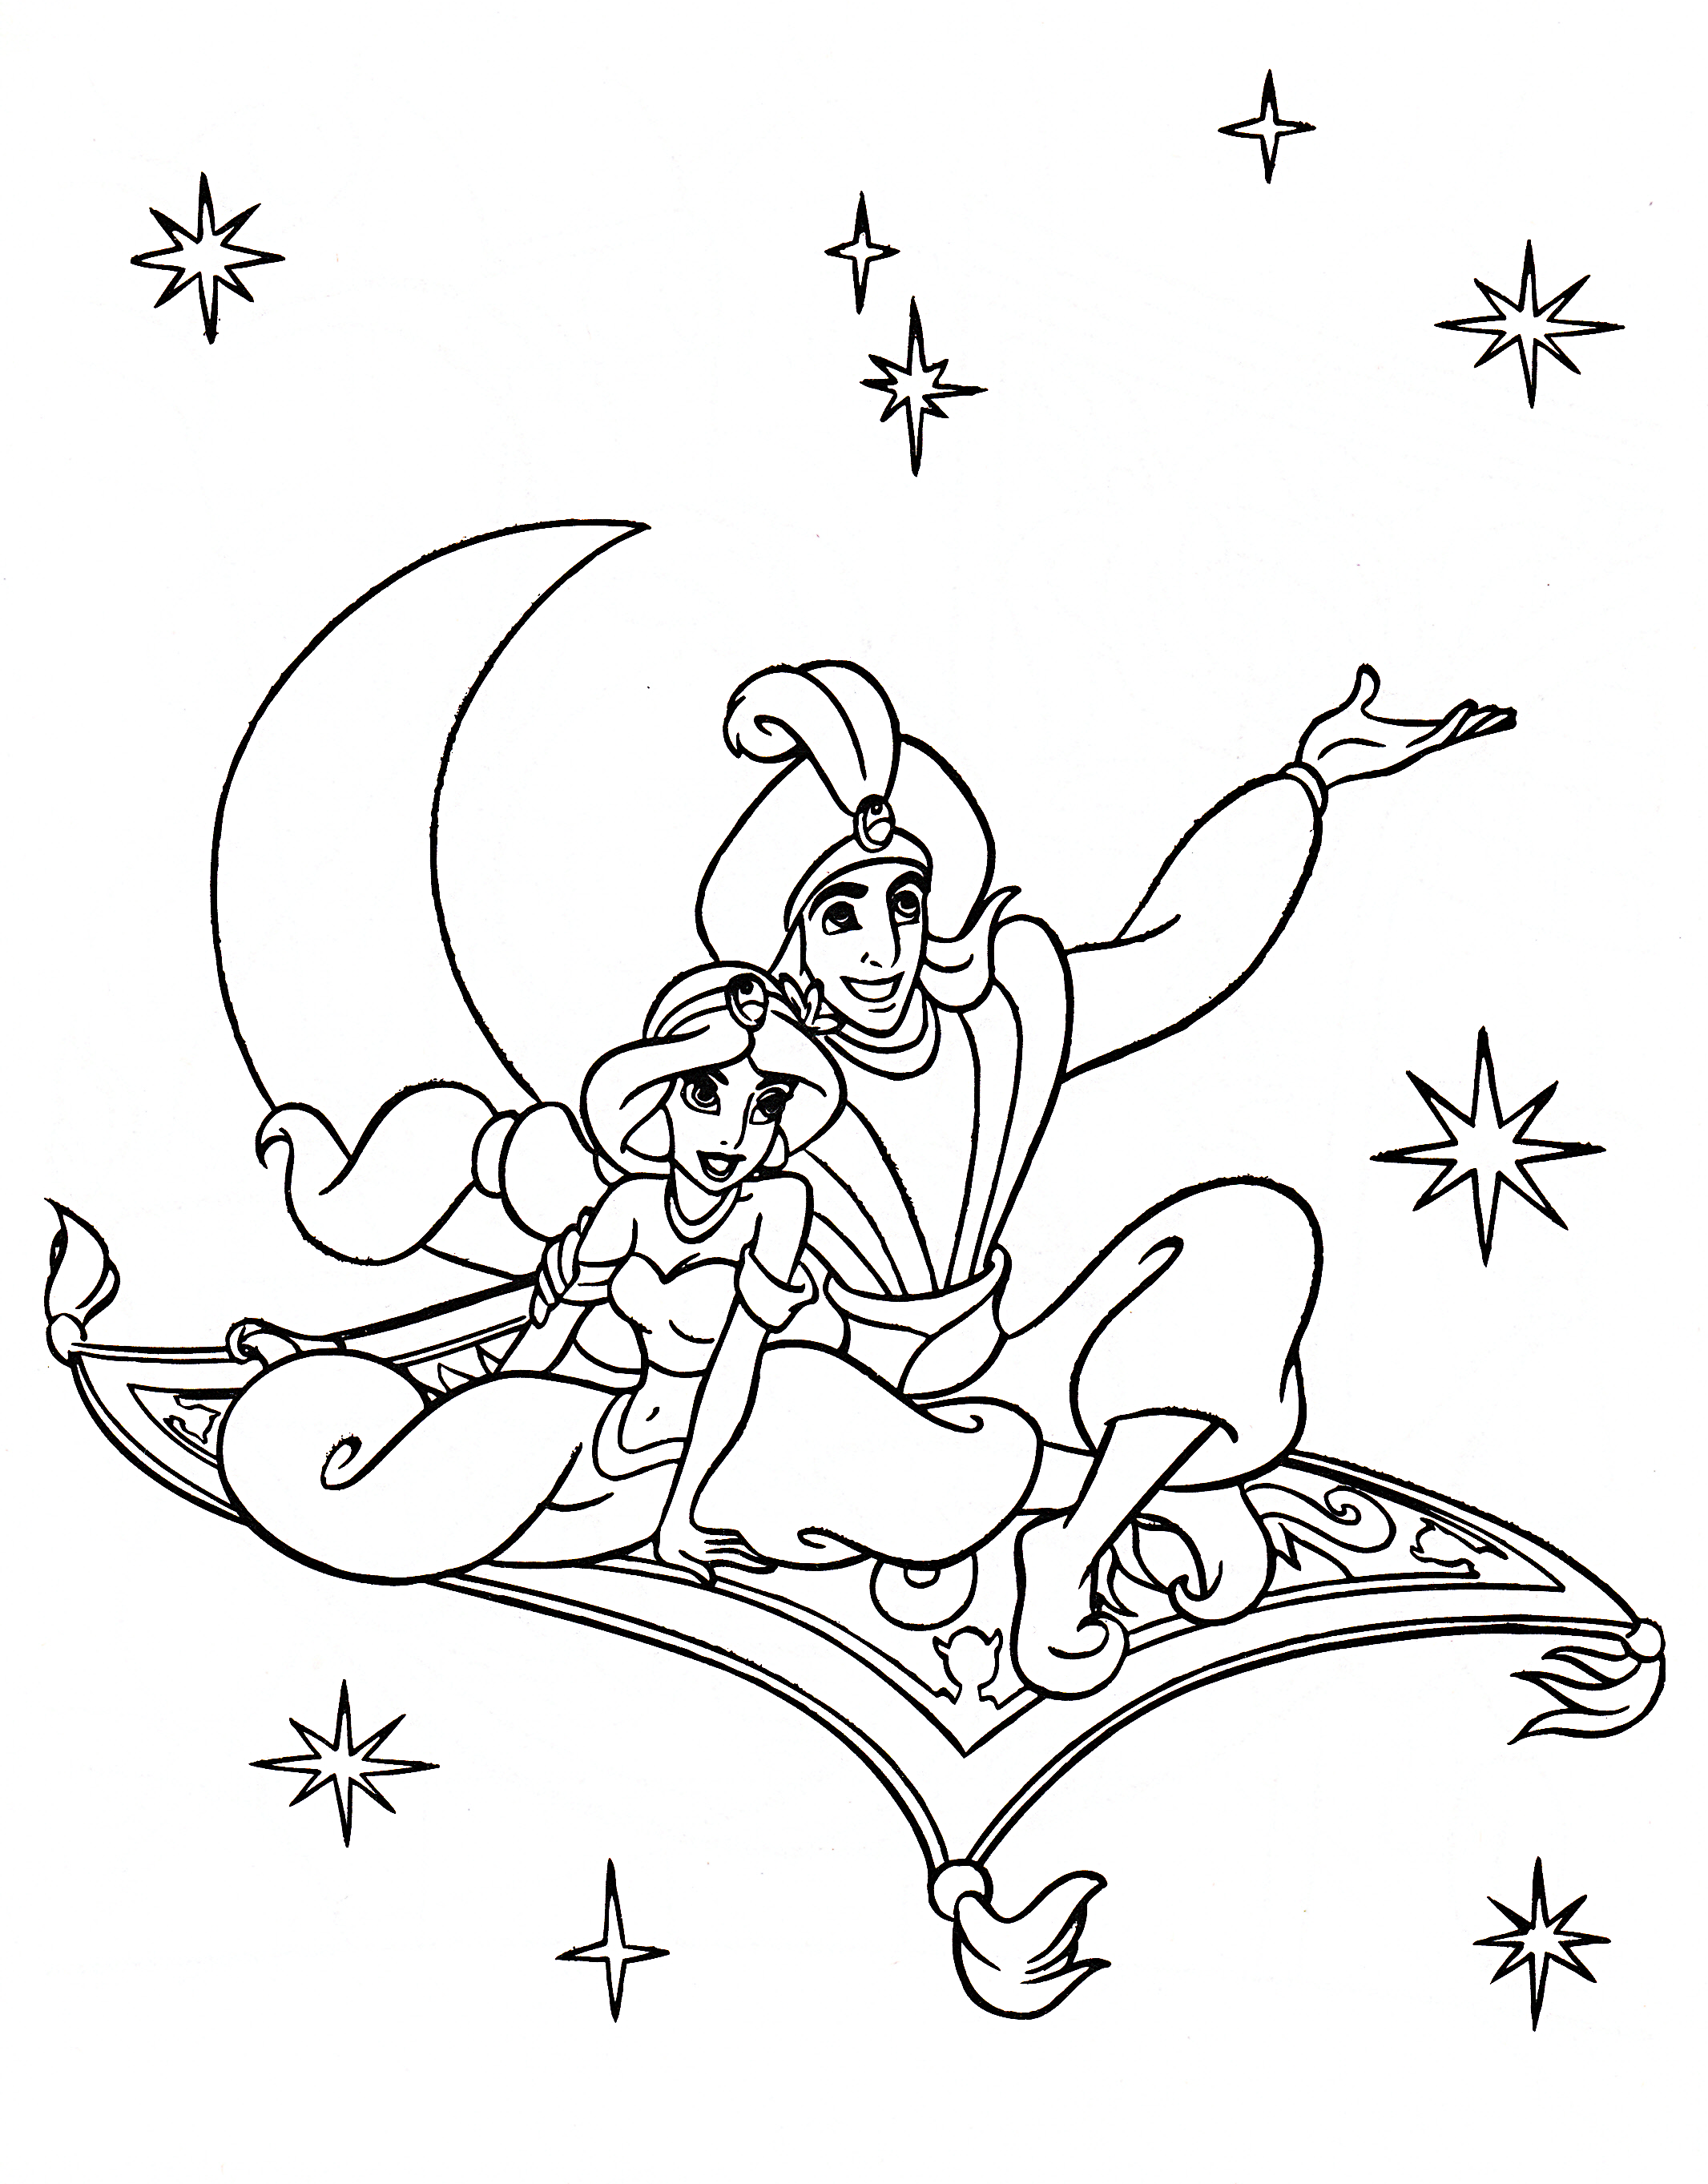 Walt Disney Coloring Pages - Princess Jasmine, Prince ...